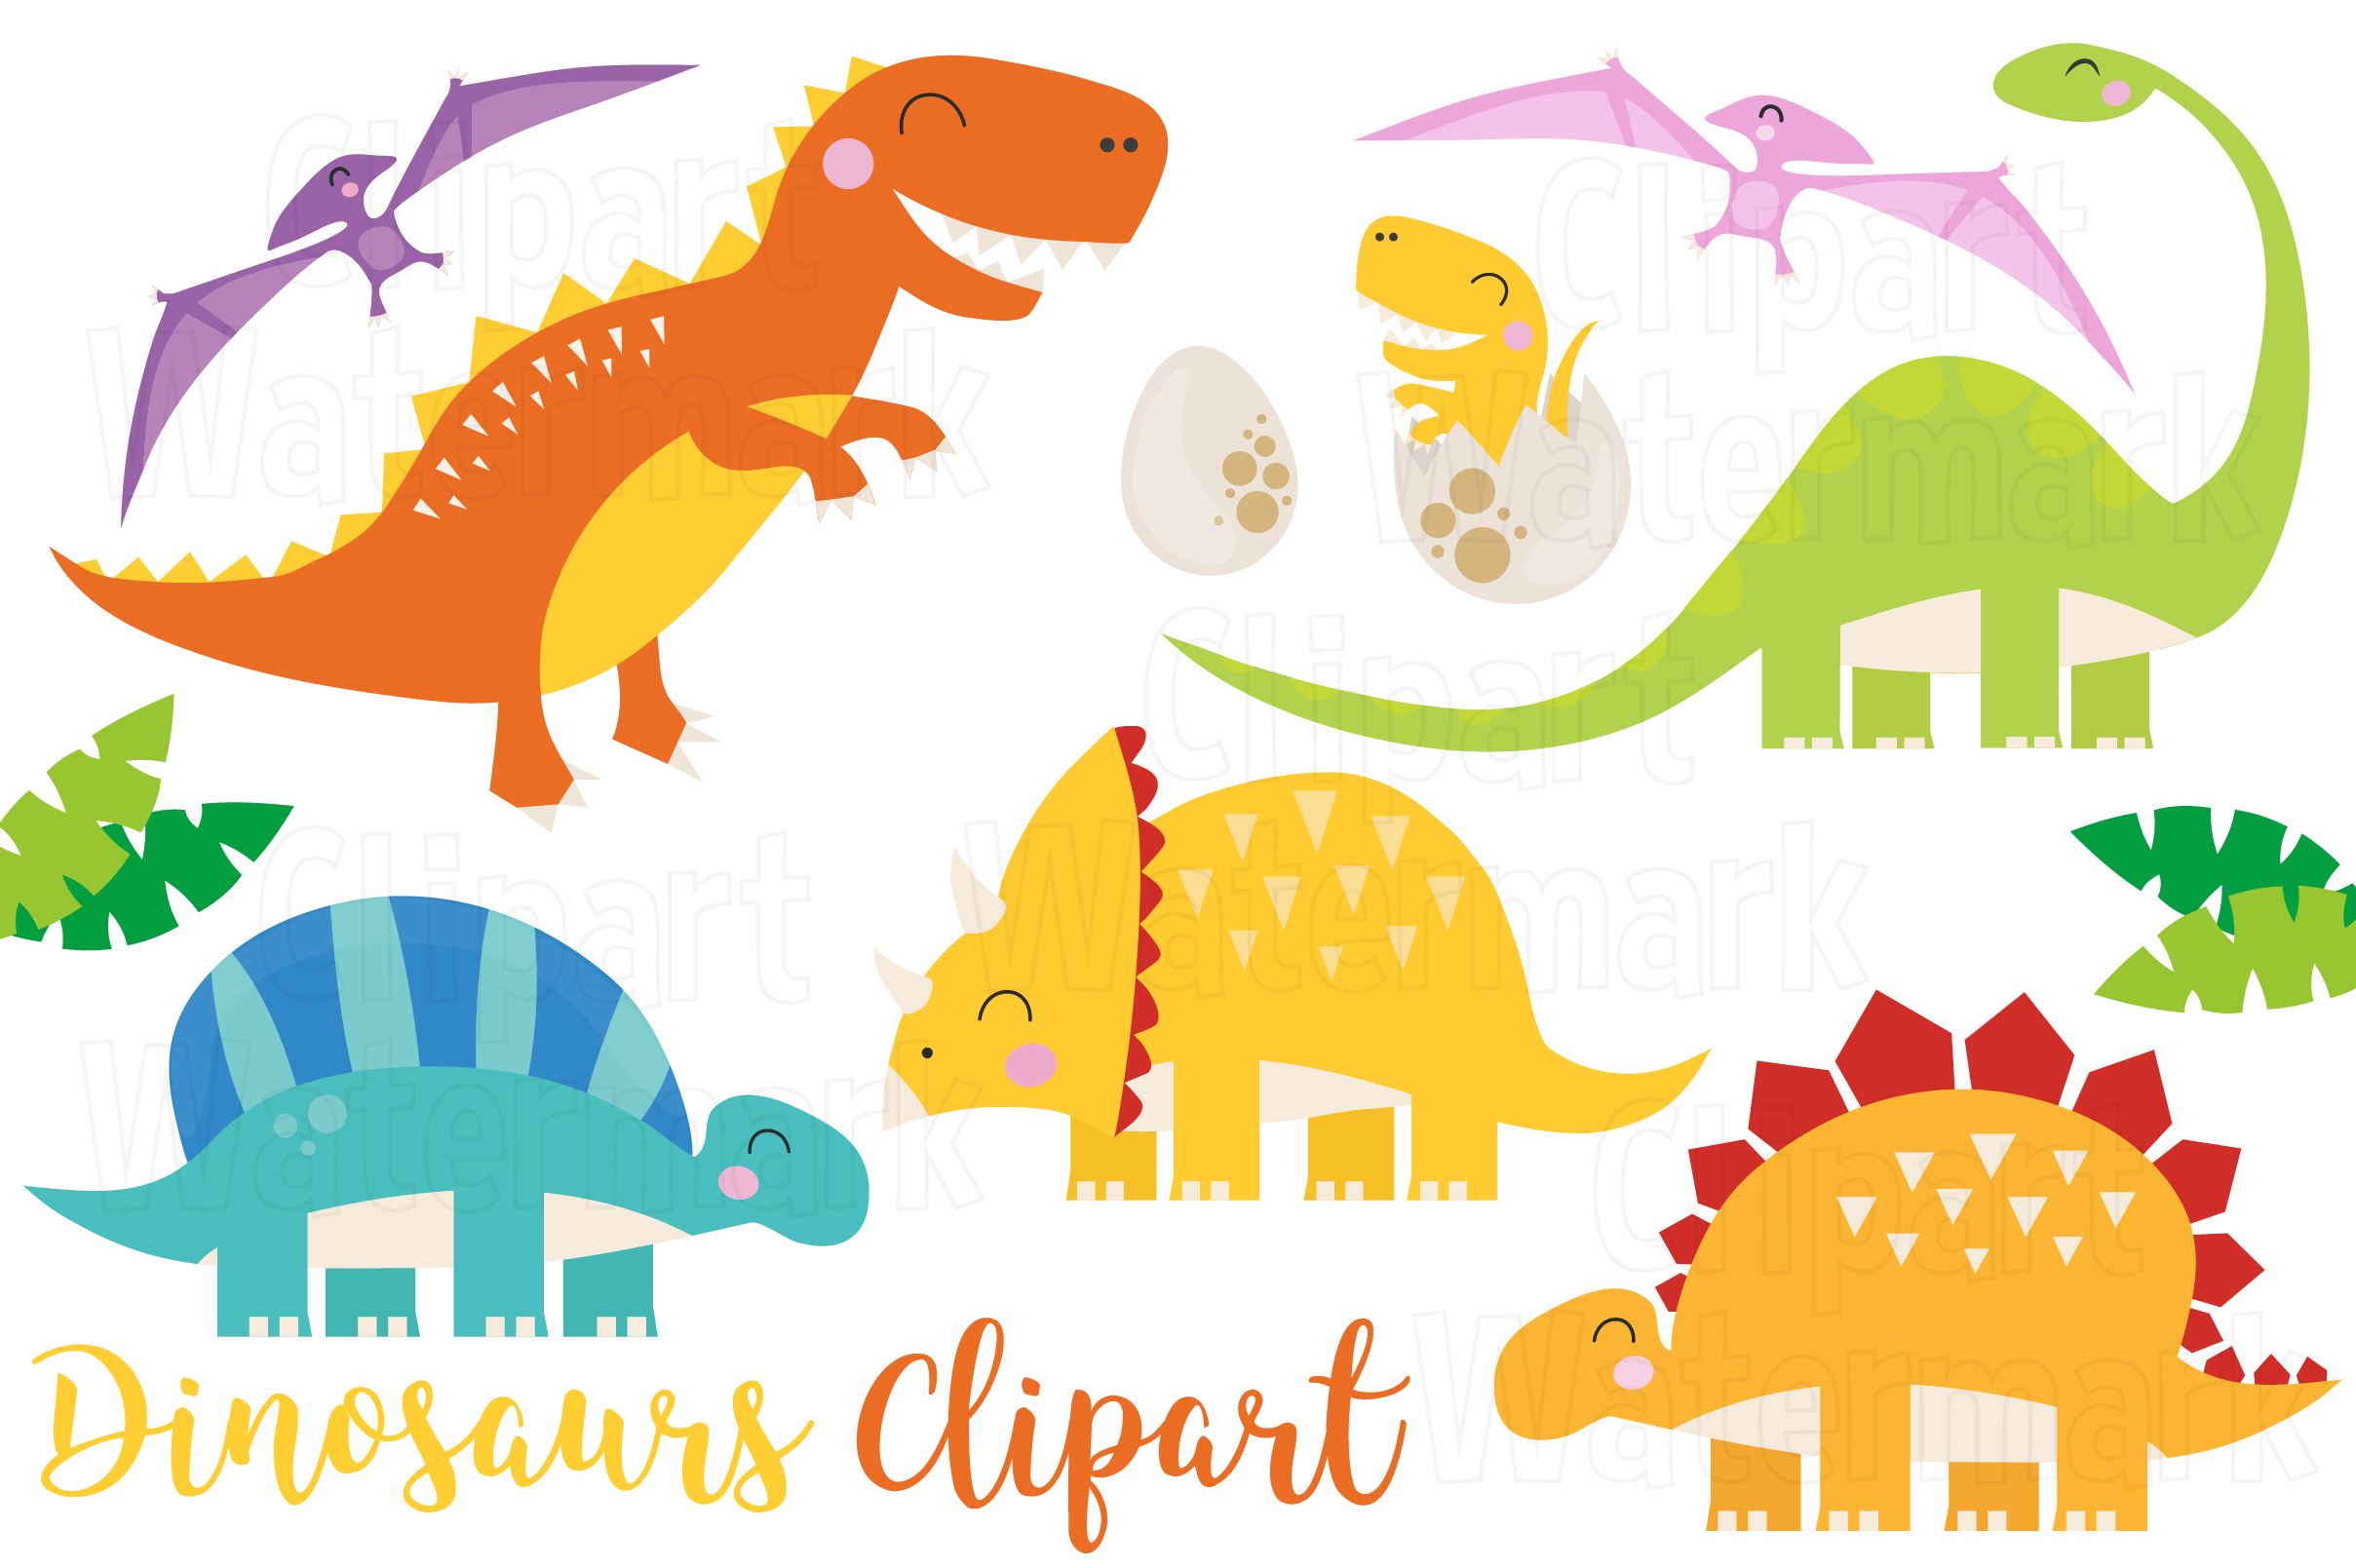 Download Free Dinosaurs Clipart Graphic By Magreenhouse Creative Fabrica for Cricut Explore, Silhouette and other cutting machines.